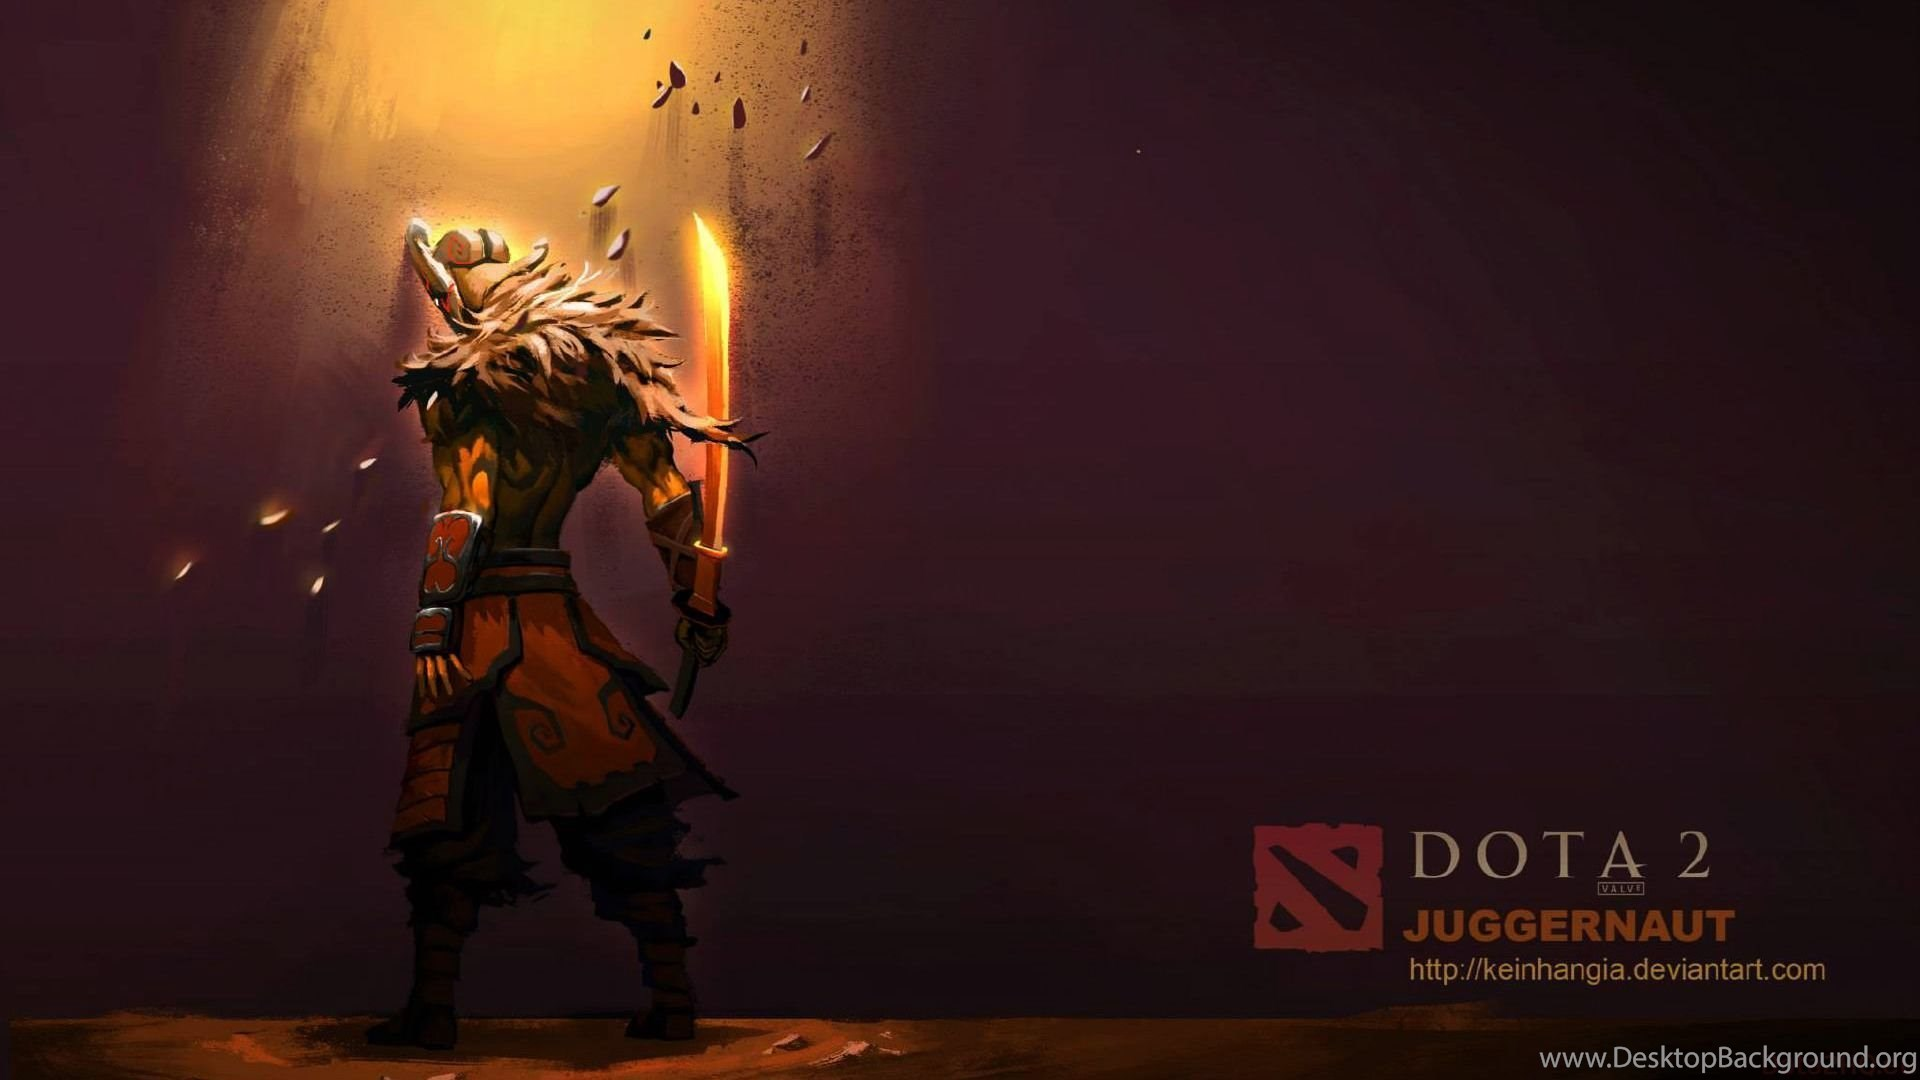 Dota Heroes Juggernaut 2015 Defense Of The Ancients Games Desktop